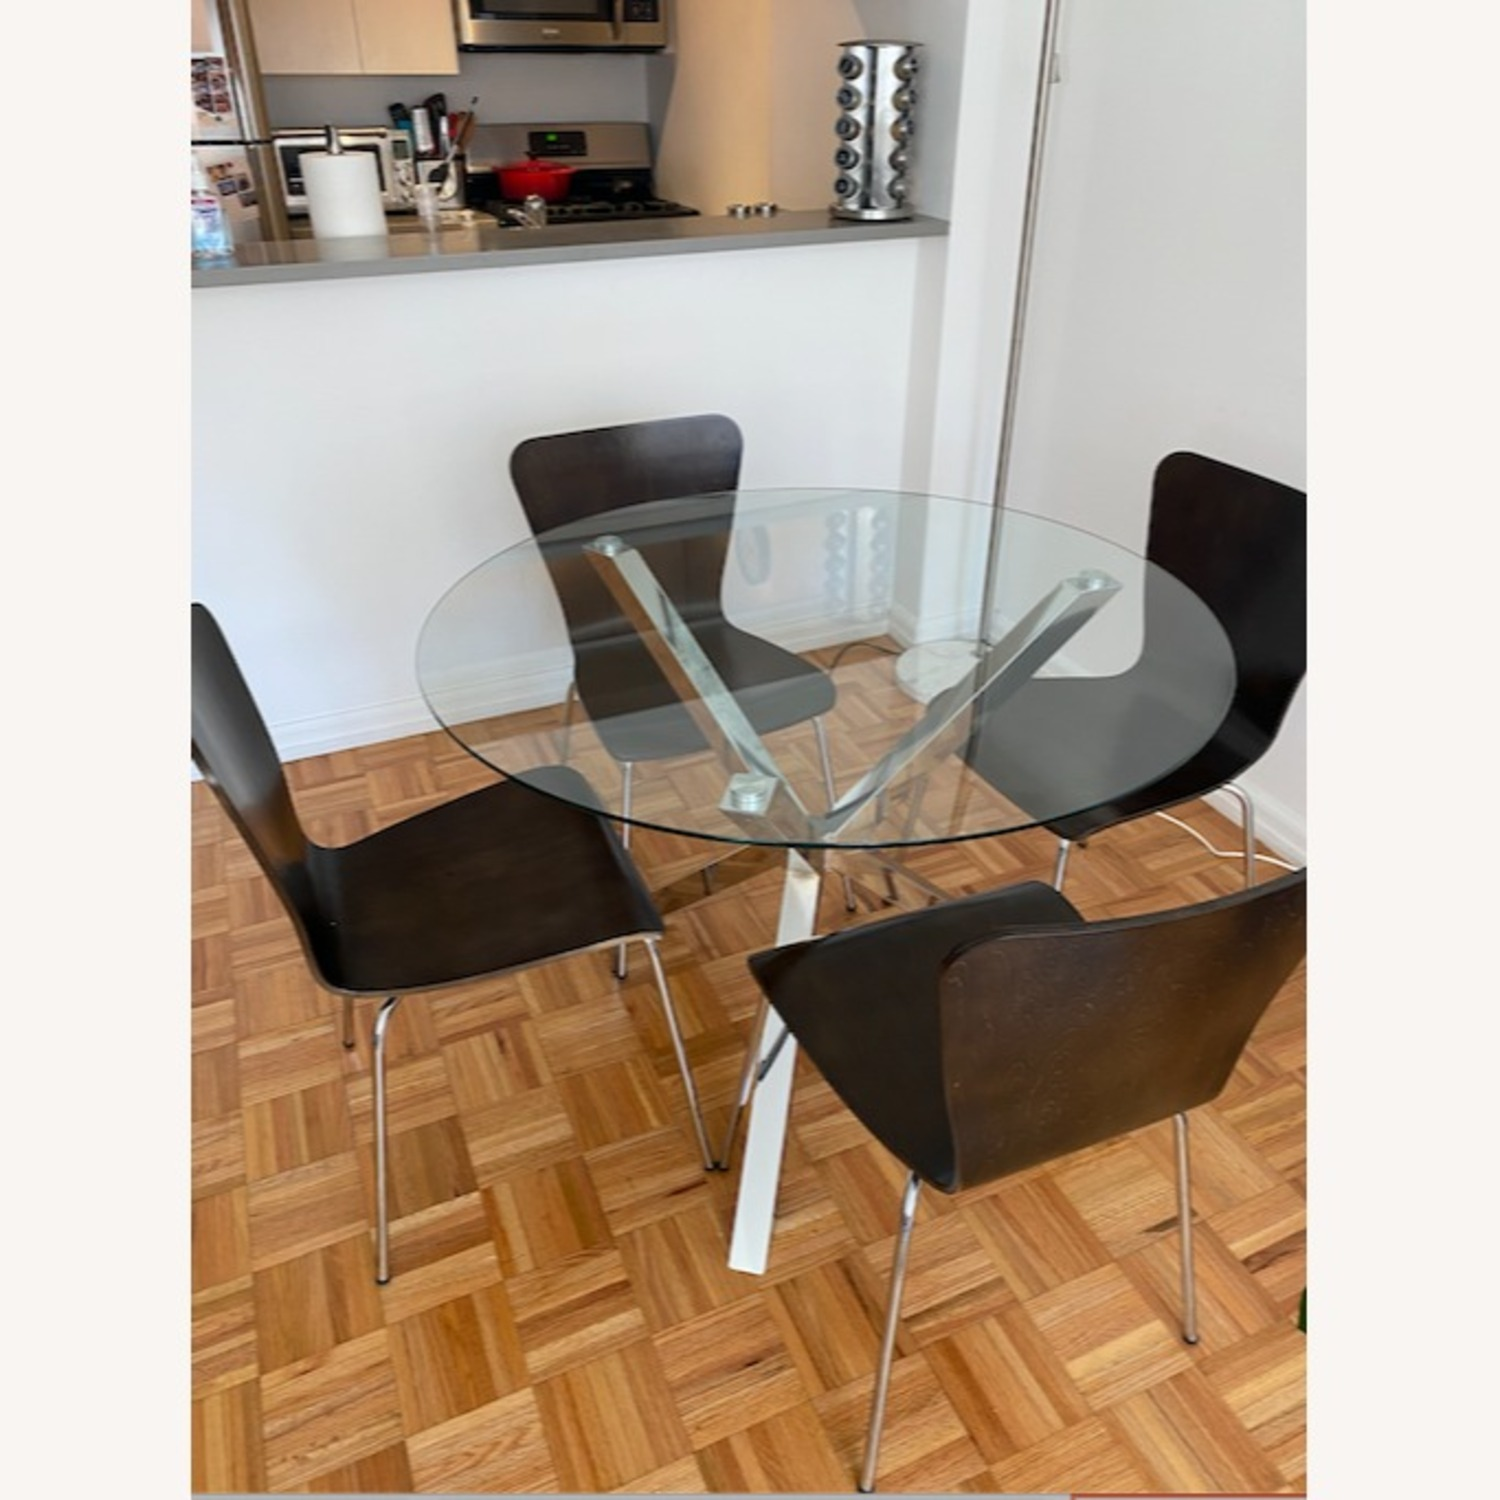 Chrome & Glass Dining Table with 4 Chairs - image-1